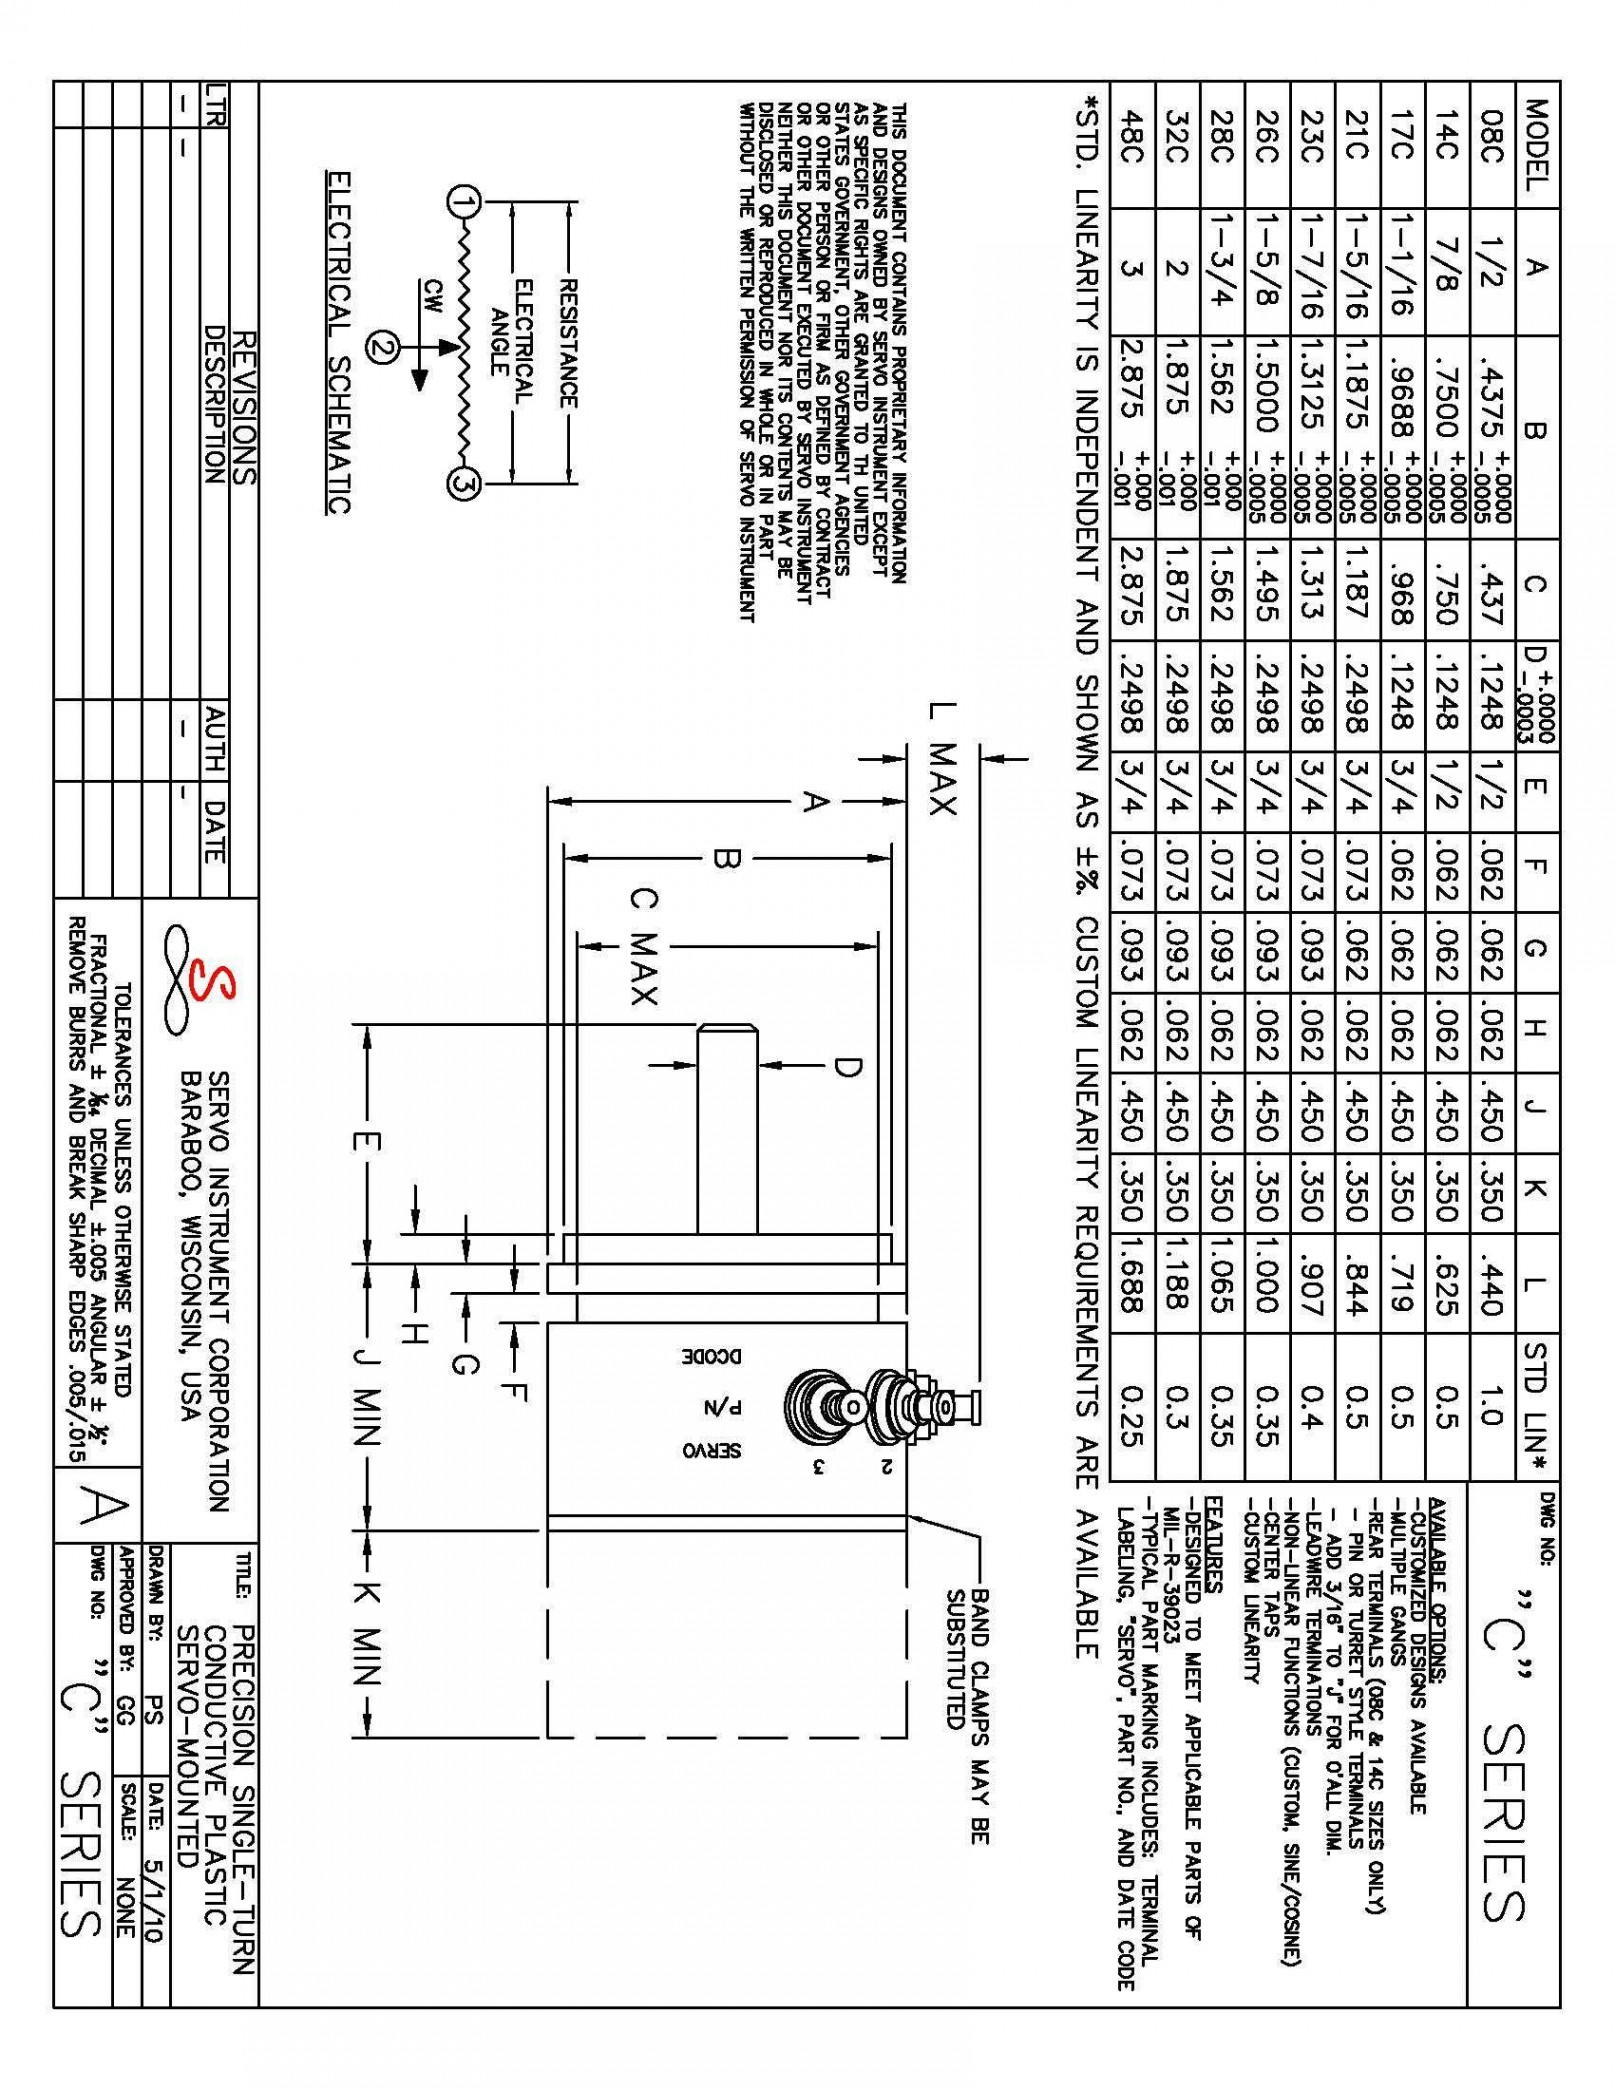 pot light wiring diagram ford falcon ba stereo potentiometer awesome image